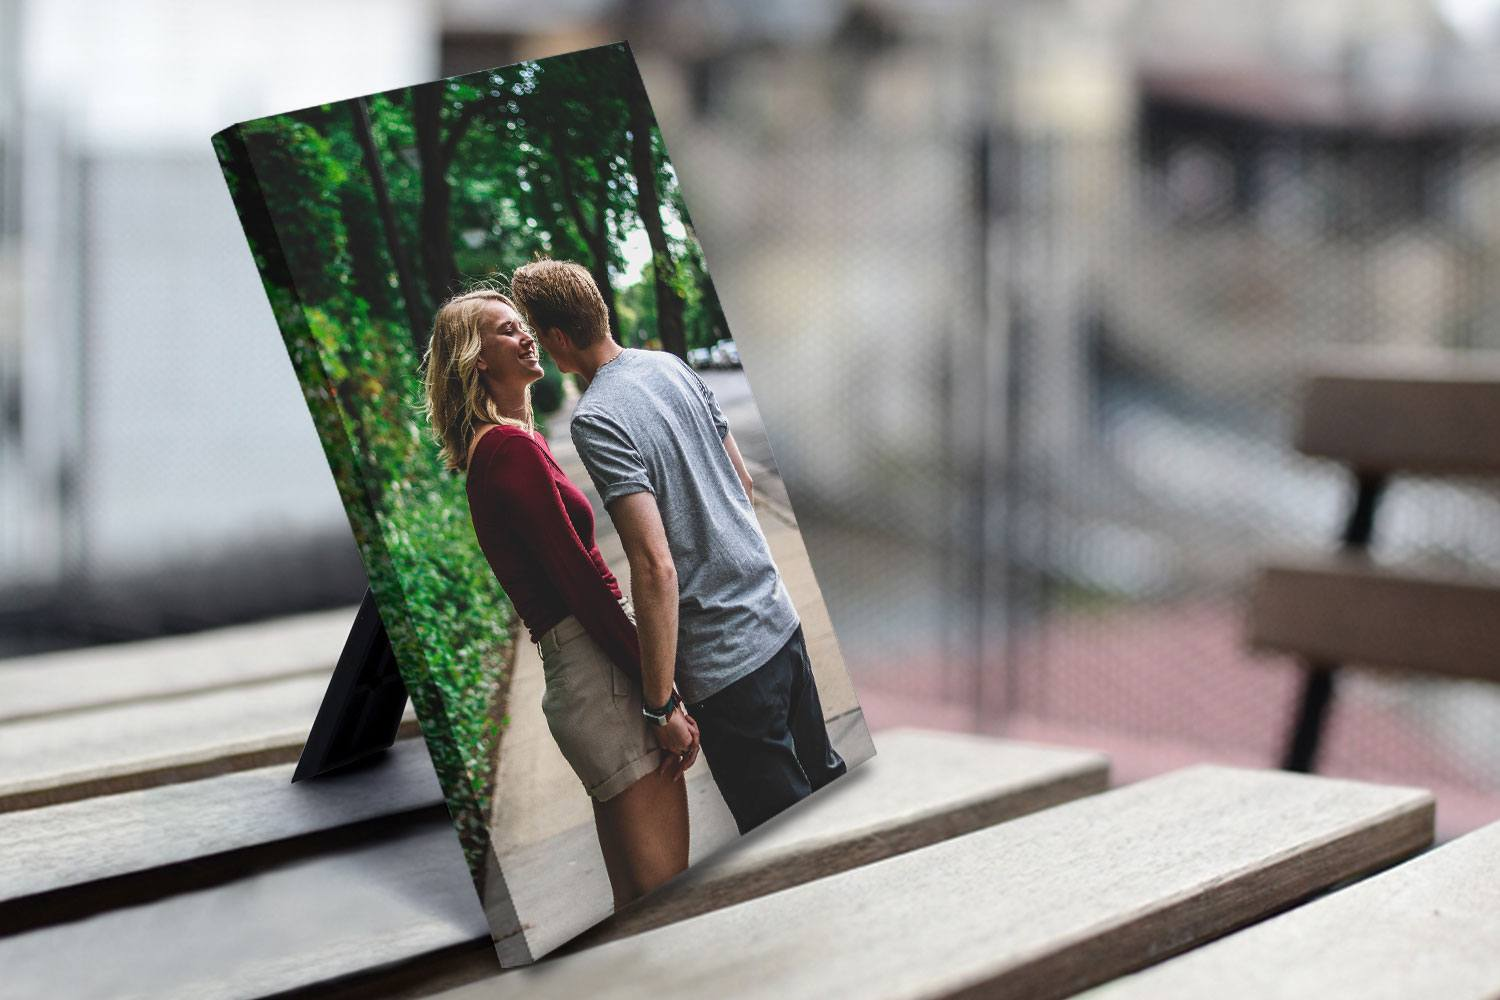 Creative Valentine's Day gift ideas - Photojaanic